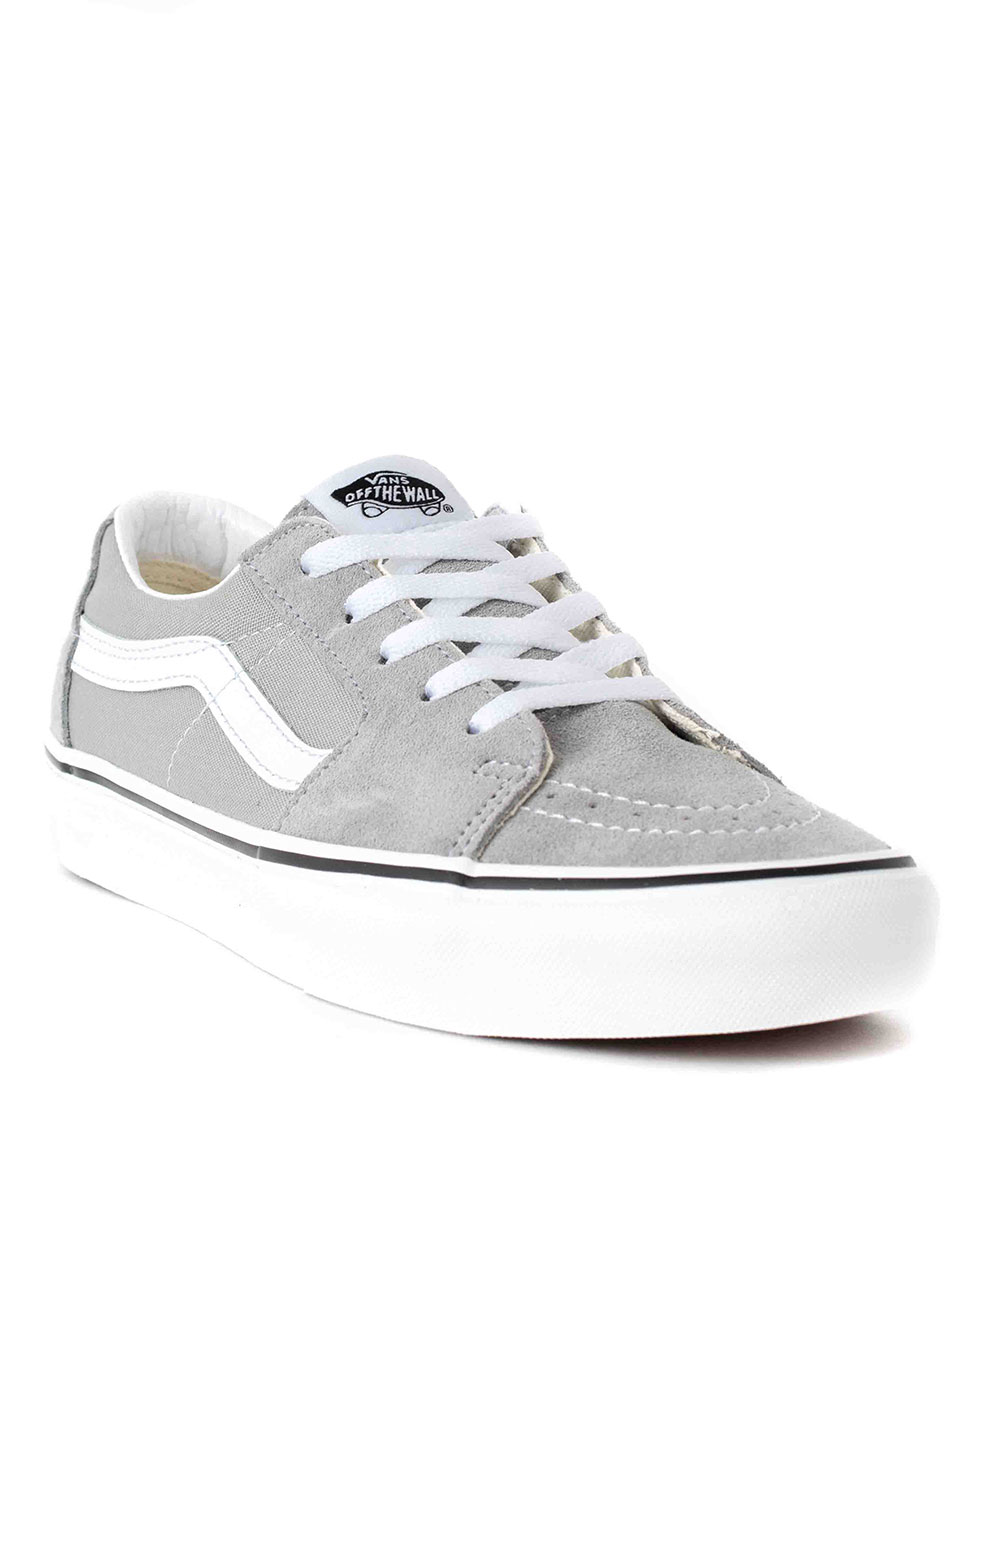 (UUKIYP) Sk8-Low Shoes - Drizzle/True White  3